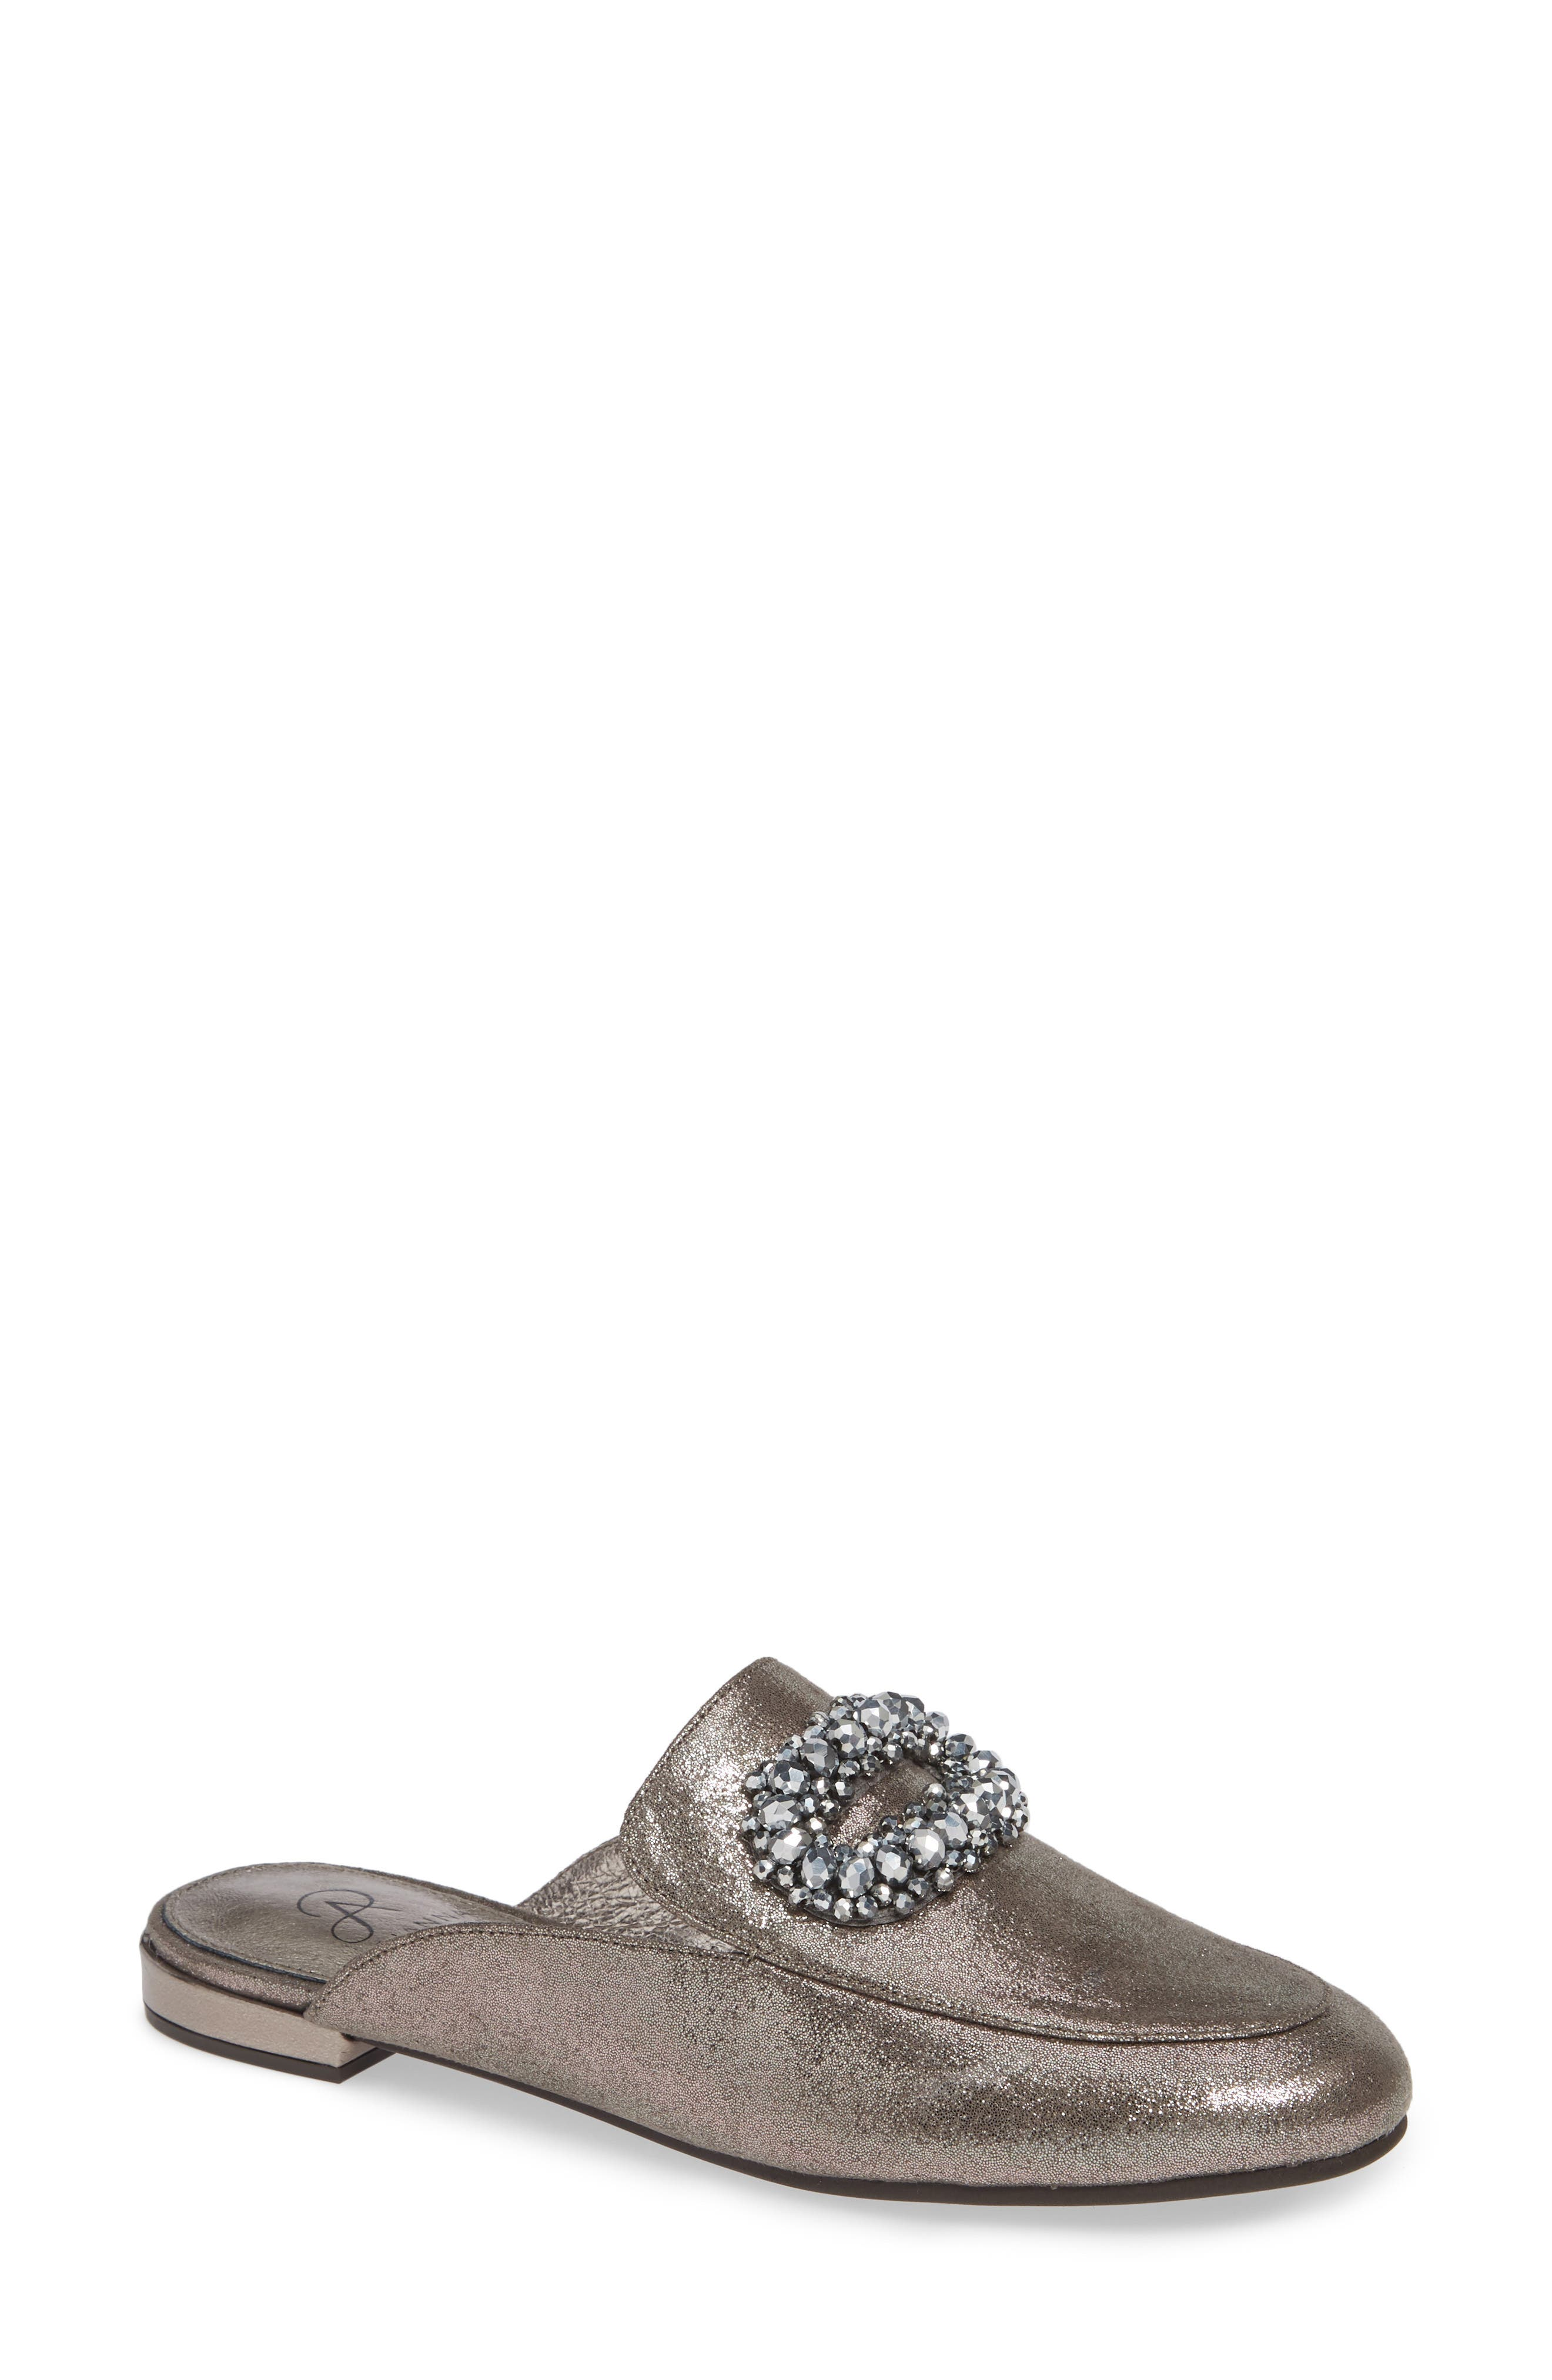 Adrianna Papell Becky Embellished Mule- Metallic